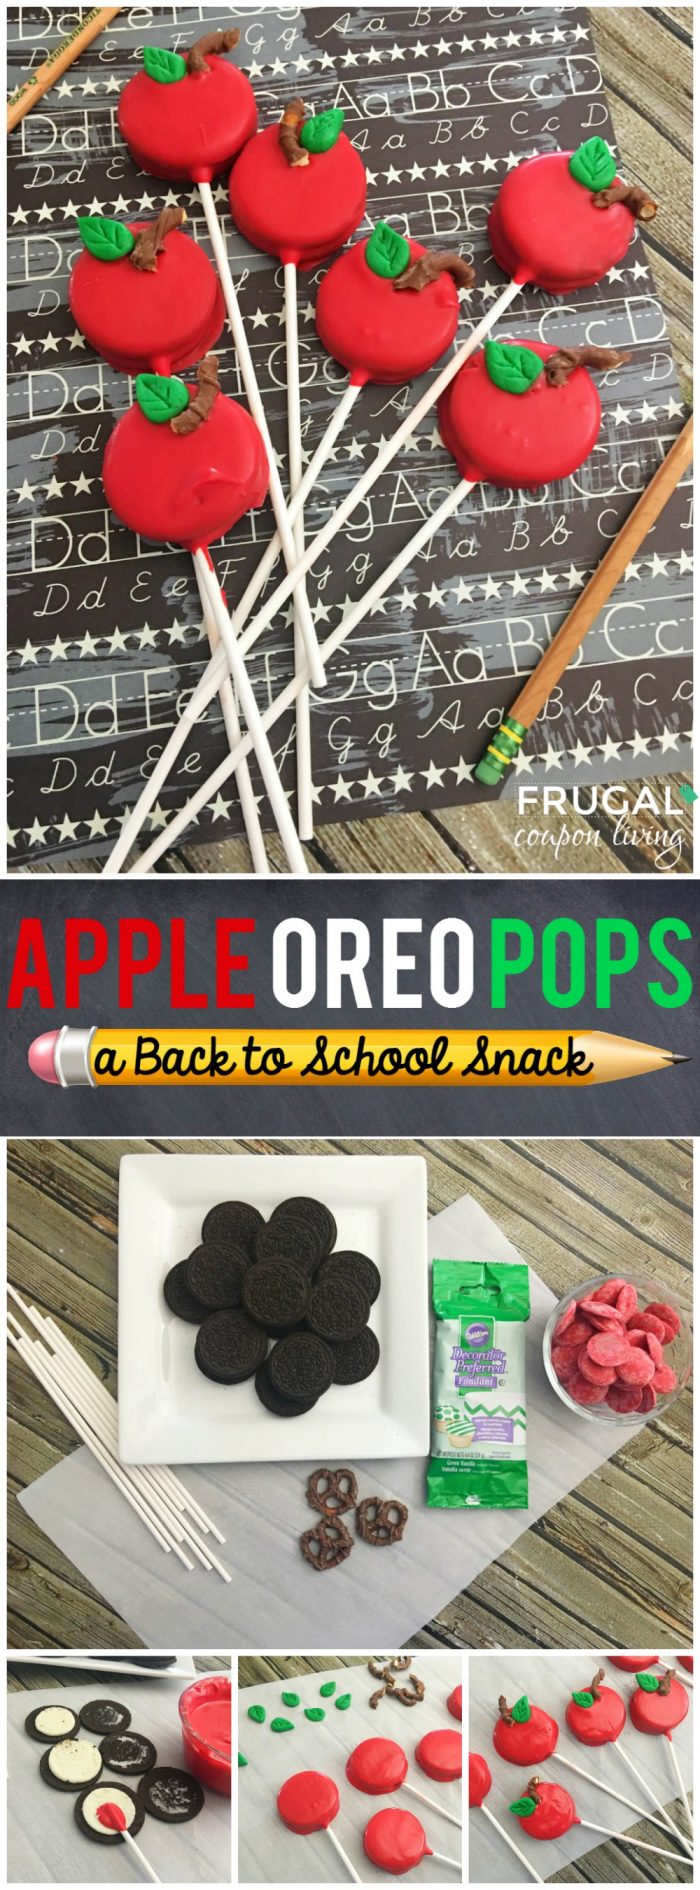 Apple-oreo-pops-frugal-coupon-living-long